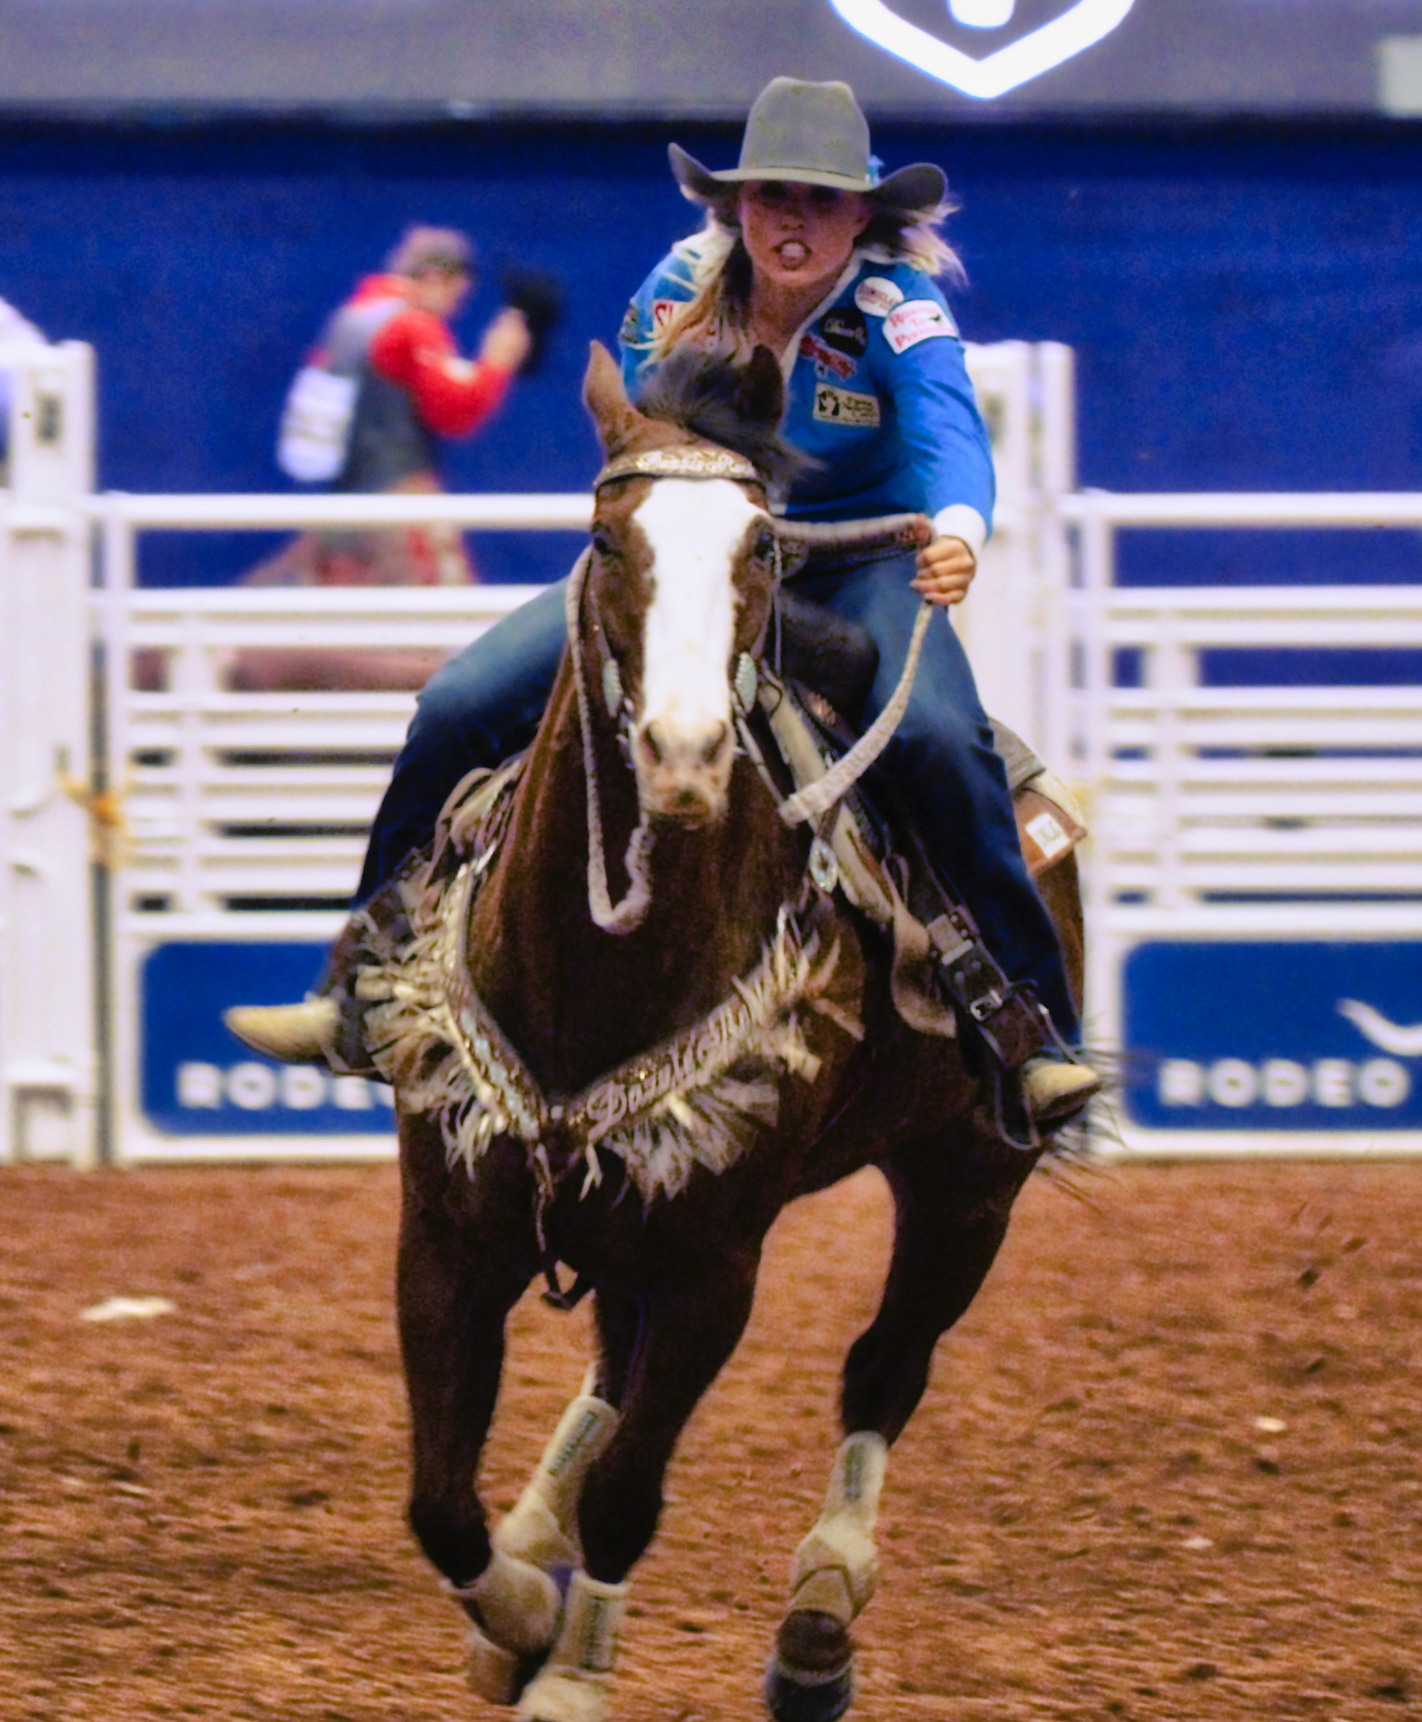 A barrel racer competes at Rodeo Austin in 2017. Original video documentaries throughout the exhibition capture the excitement of rodeo events across the state.